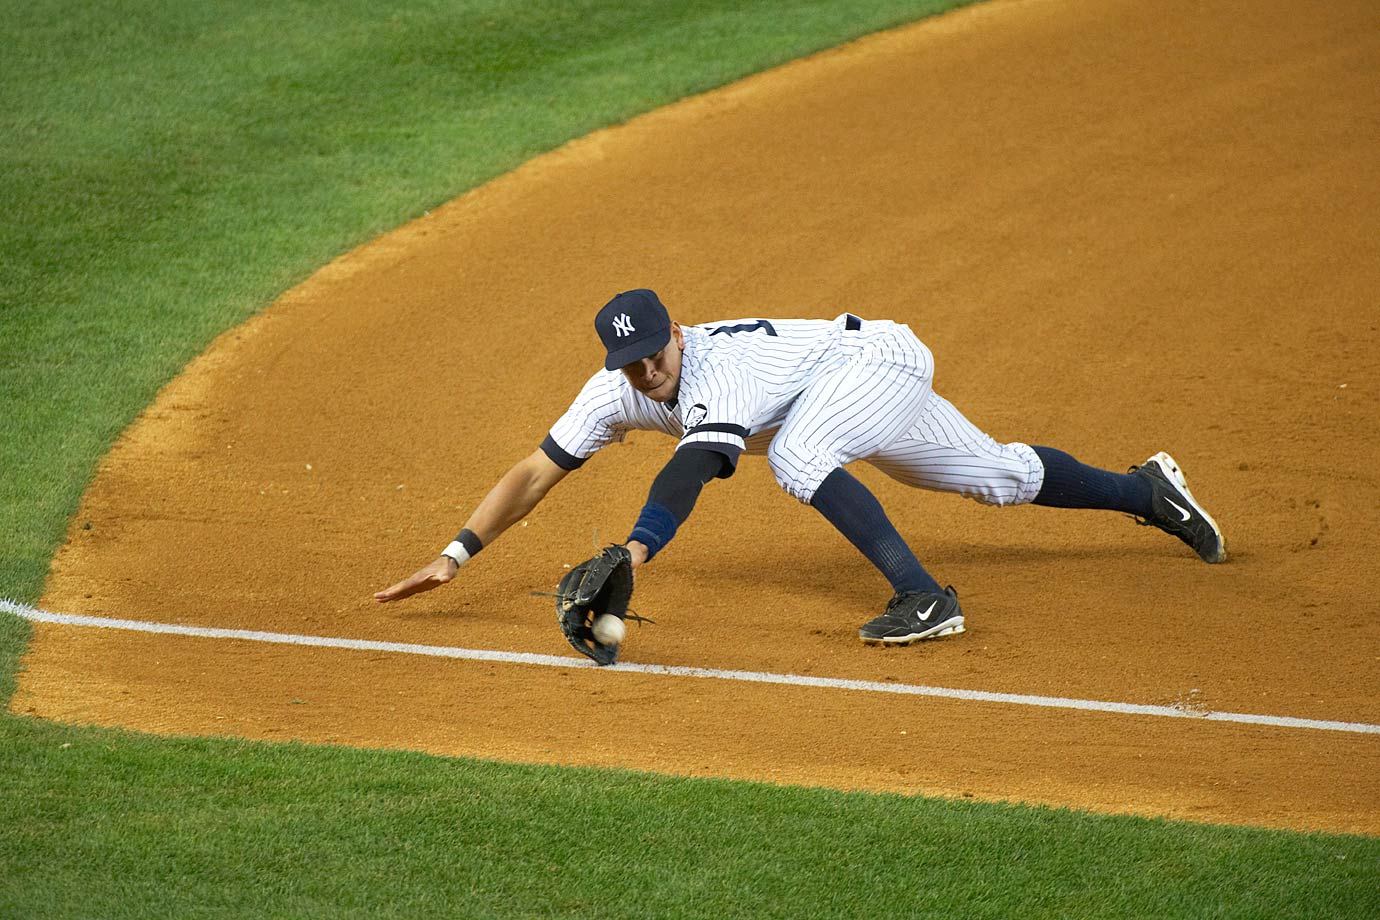 2010 American League Championship Series, Game 3